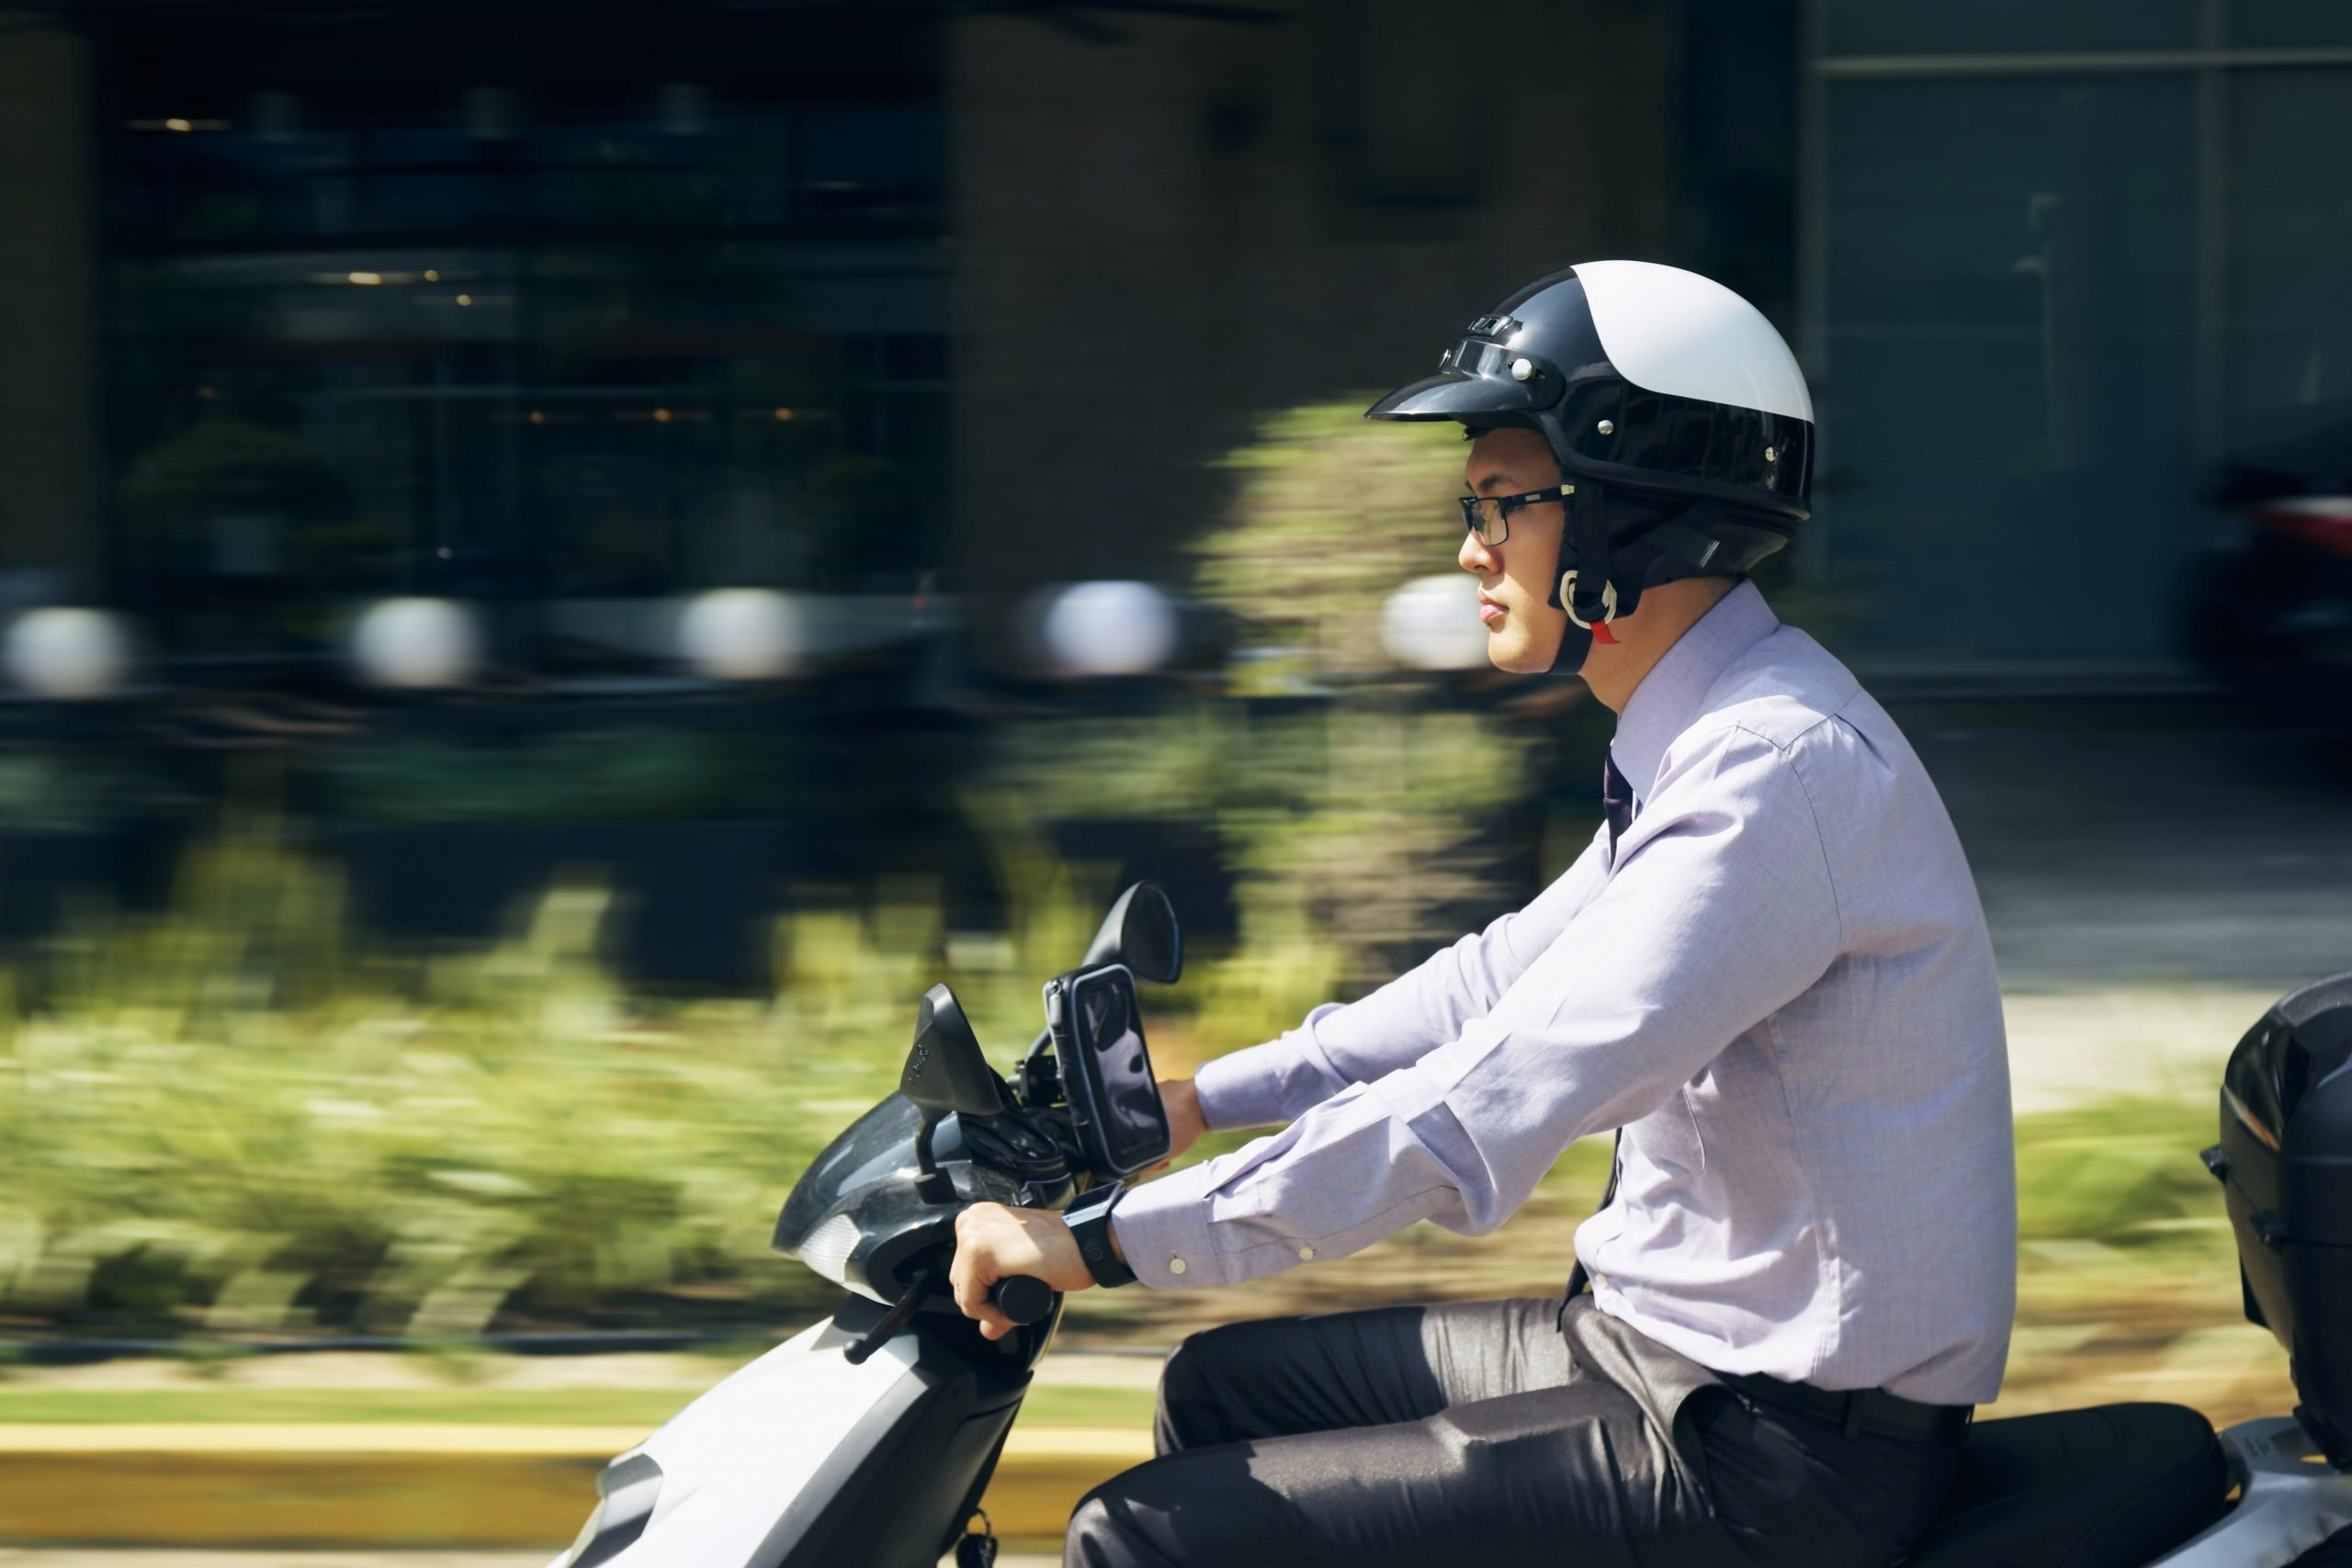 man-driving-scooter